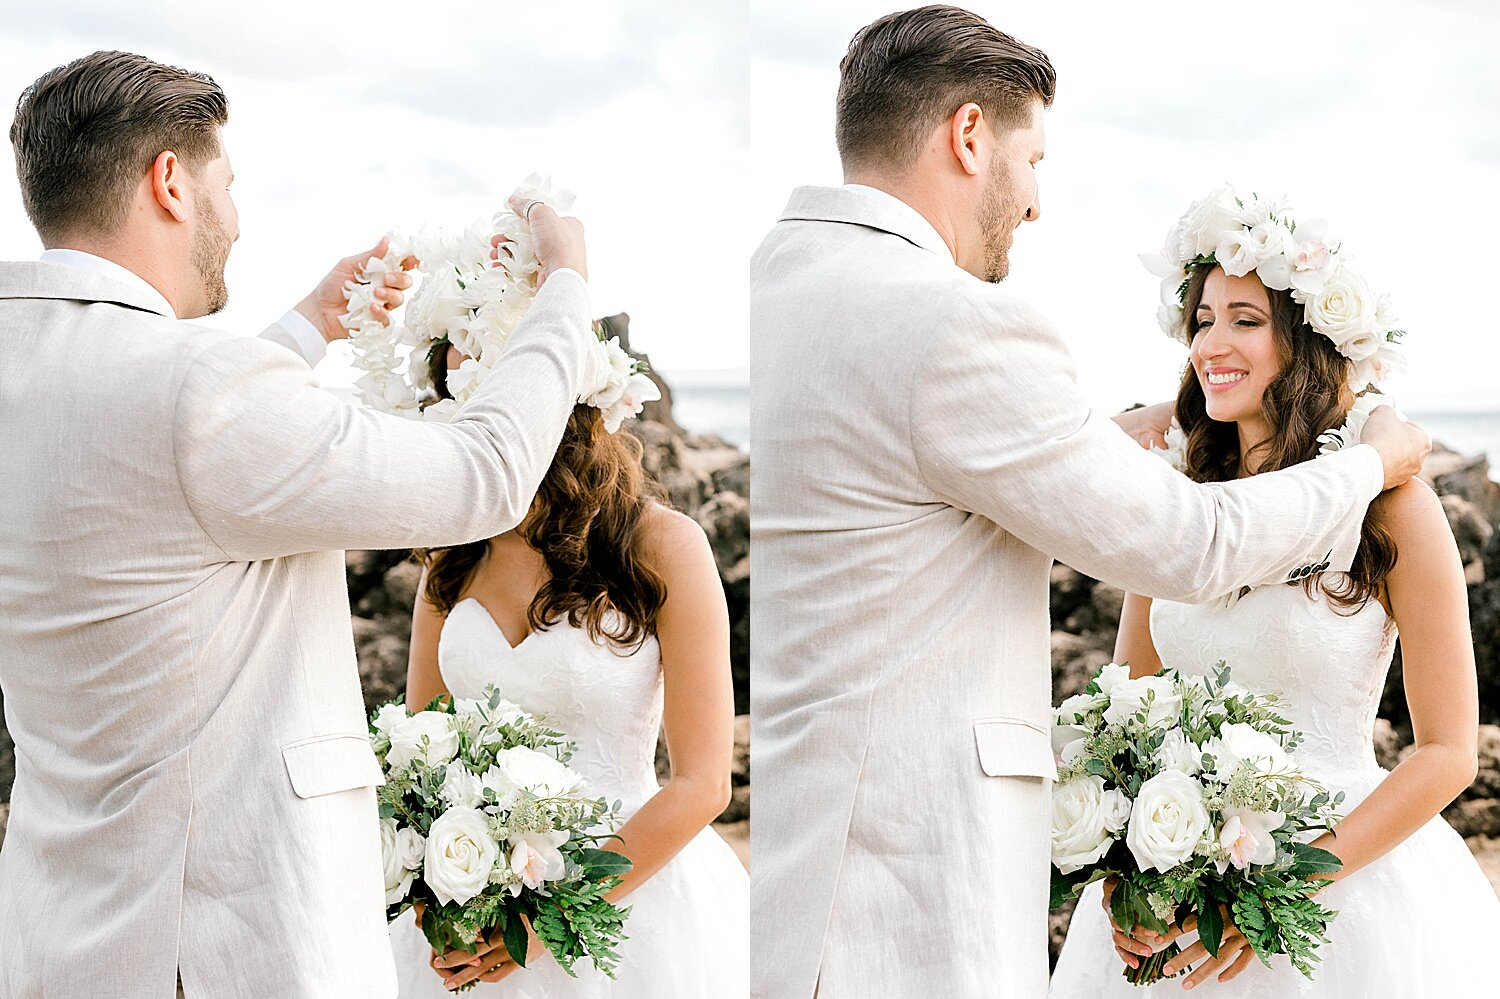 Groom placing the lei around the bride's neck during a wedding ceremony on a Maui beach